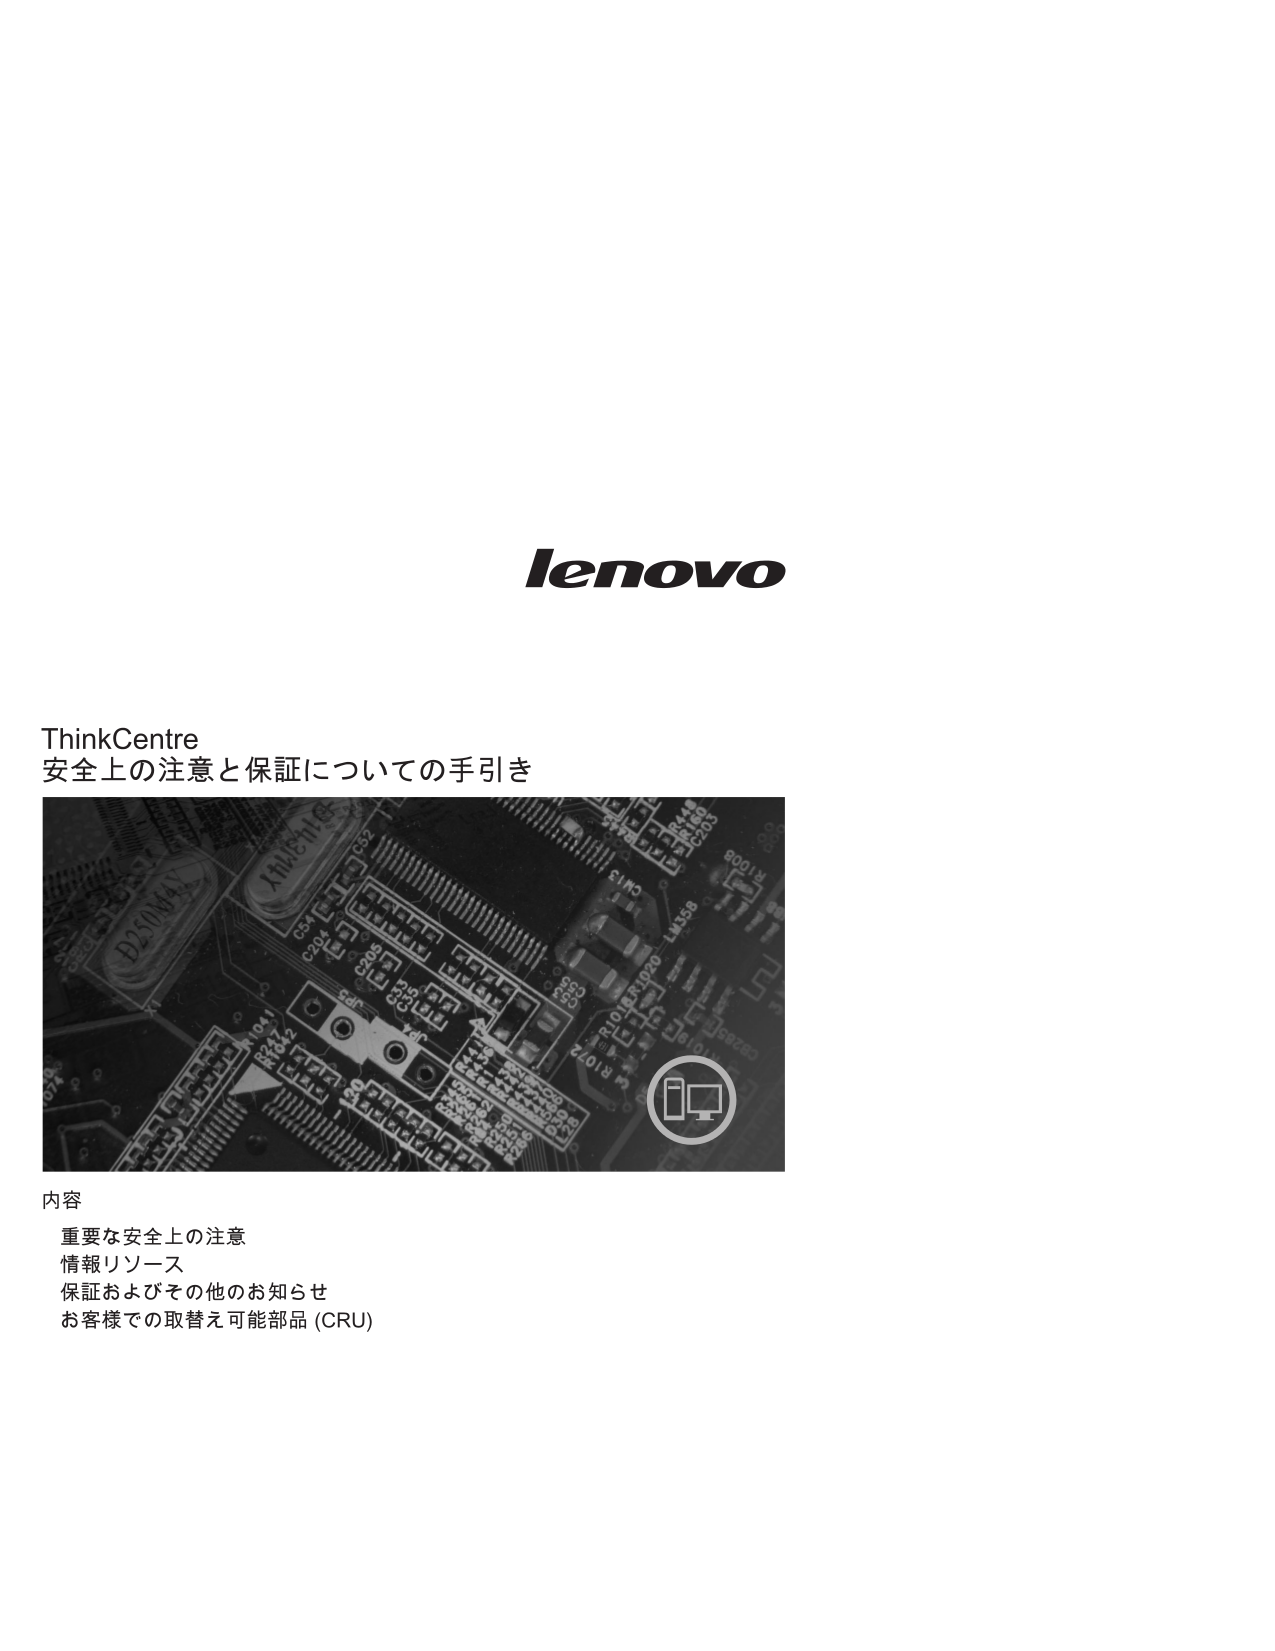 pdf for Lenovo Desktop ThinkCentre A61 9158 manual